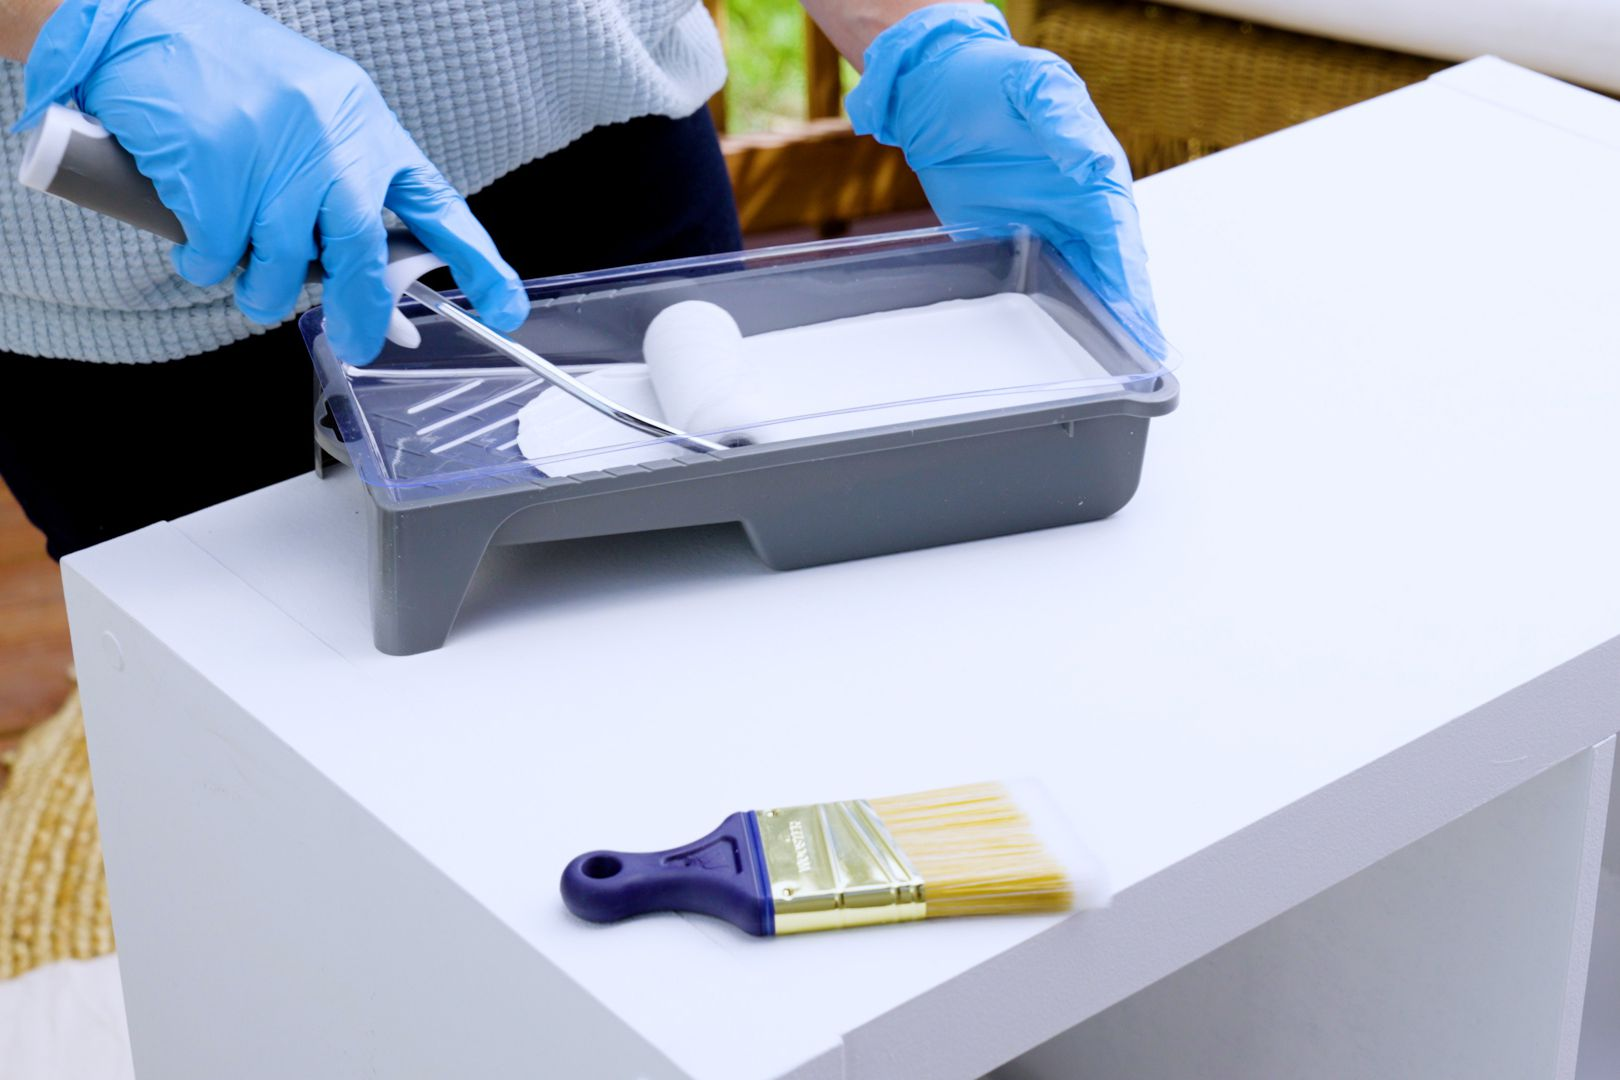 Painting tray with white paint and roller brush and flat brush on parrticleboard furniture